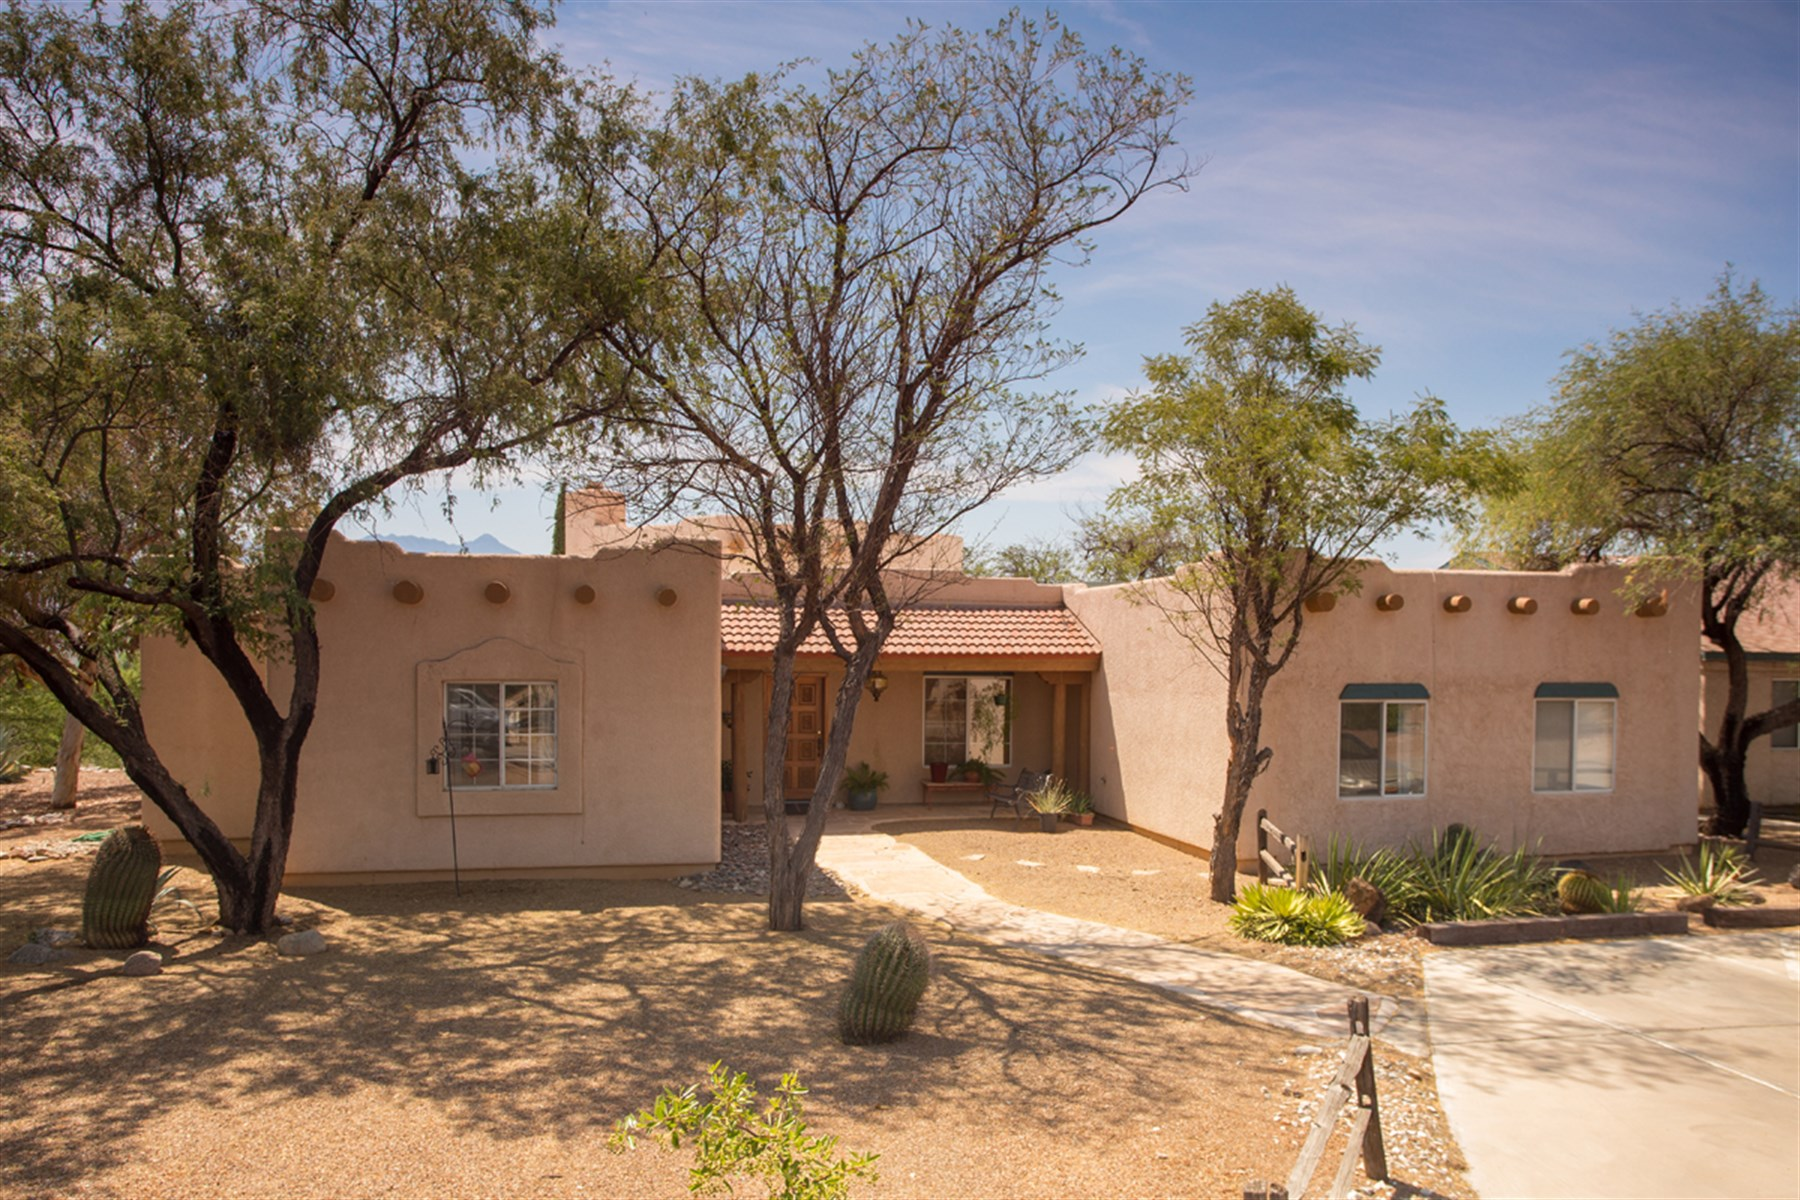 Single Family Home for Sale at Exceptional opportunity to own a large home on acreage. 3100 W Calle Dos Green Valley, Arizona 85622 United States